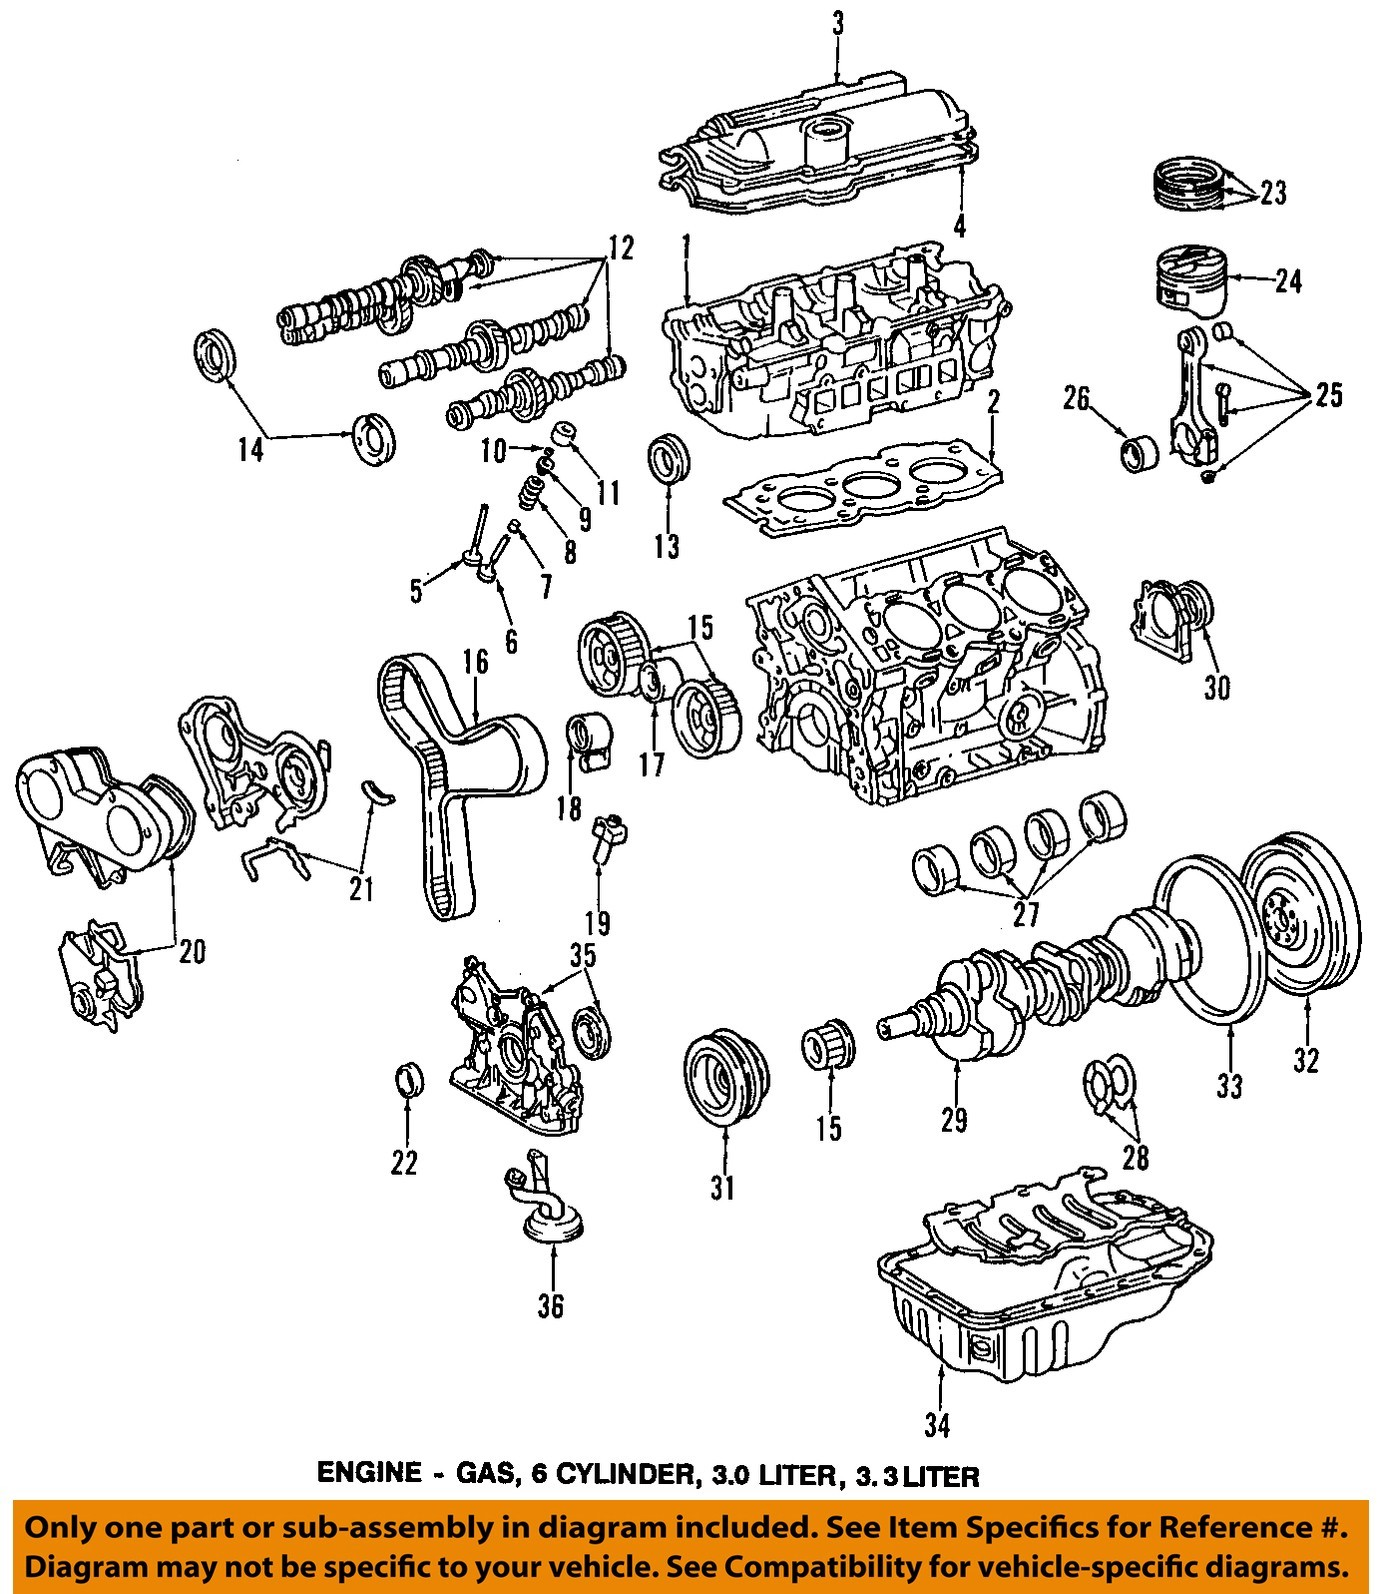 93 camry engine parts diagram basic wiring diagram u2022 rh rnetcomputer co